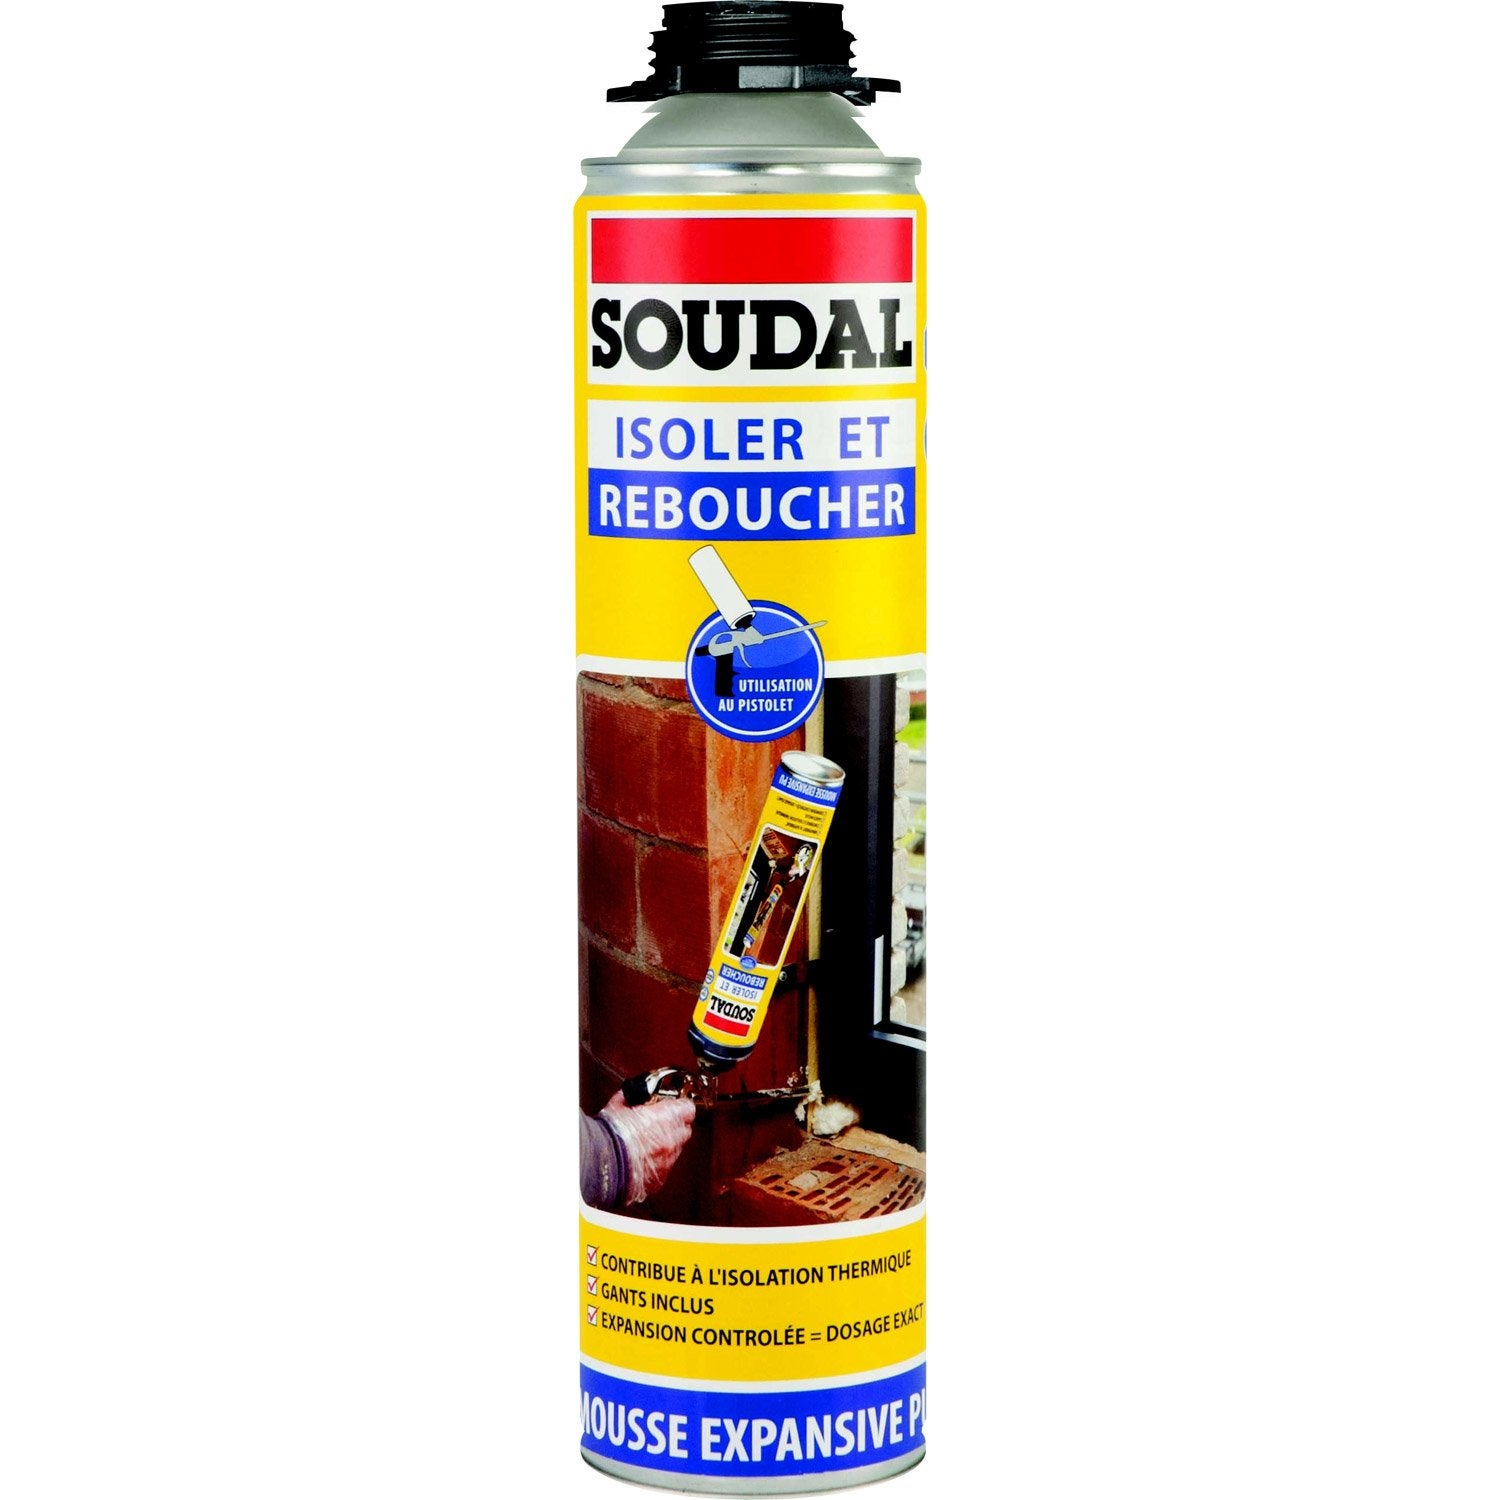 Mousse expansive soudal pistolable isoler reboucher 500ml leroy merlin - Mousse acoustique leroy merlin ...